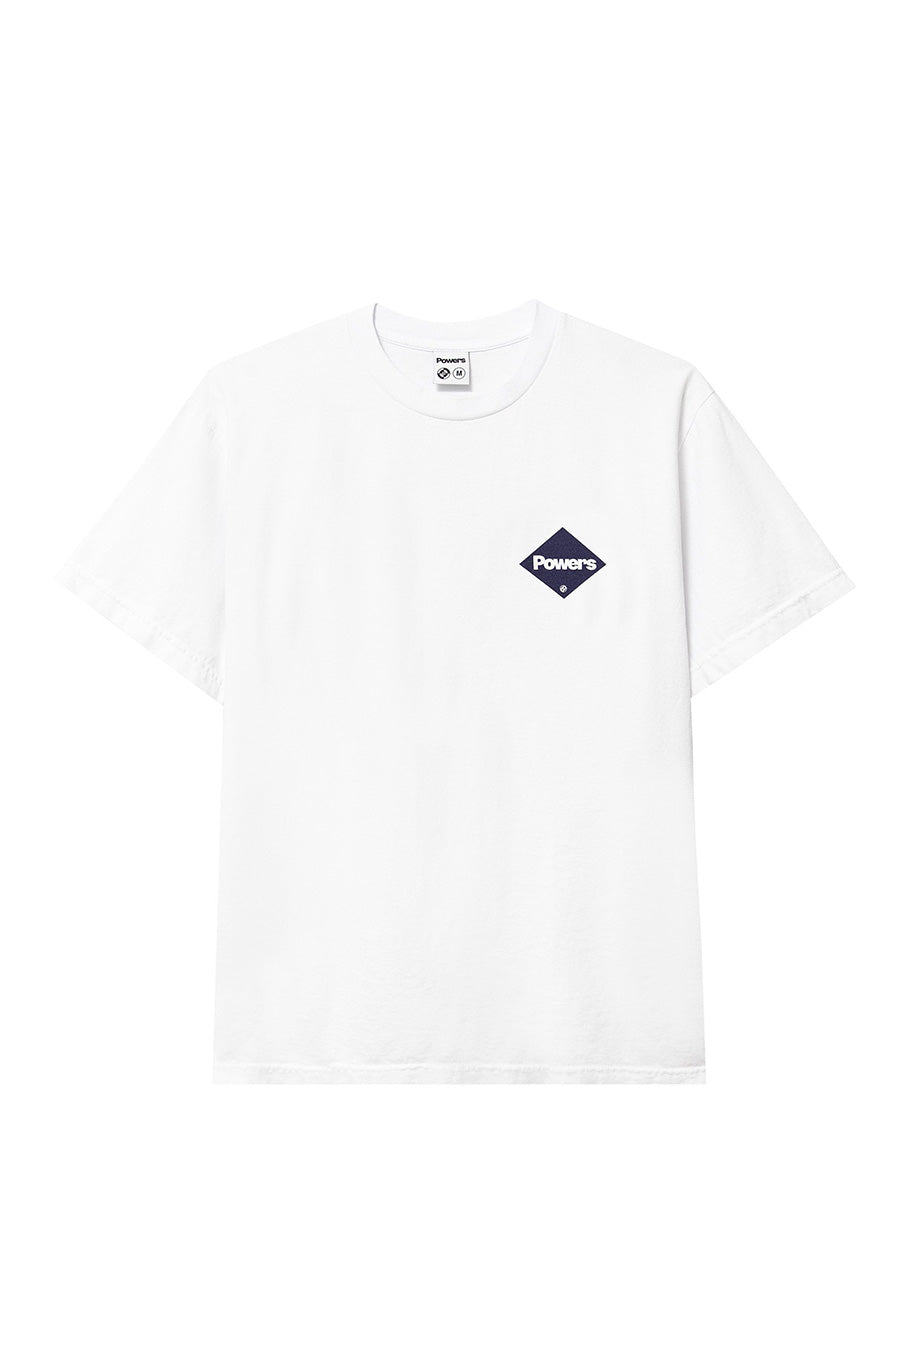 Powers Supply - White Diamond Logo T-Shirt | 1032 SPACE